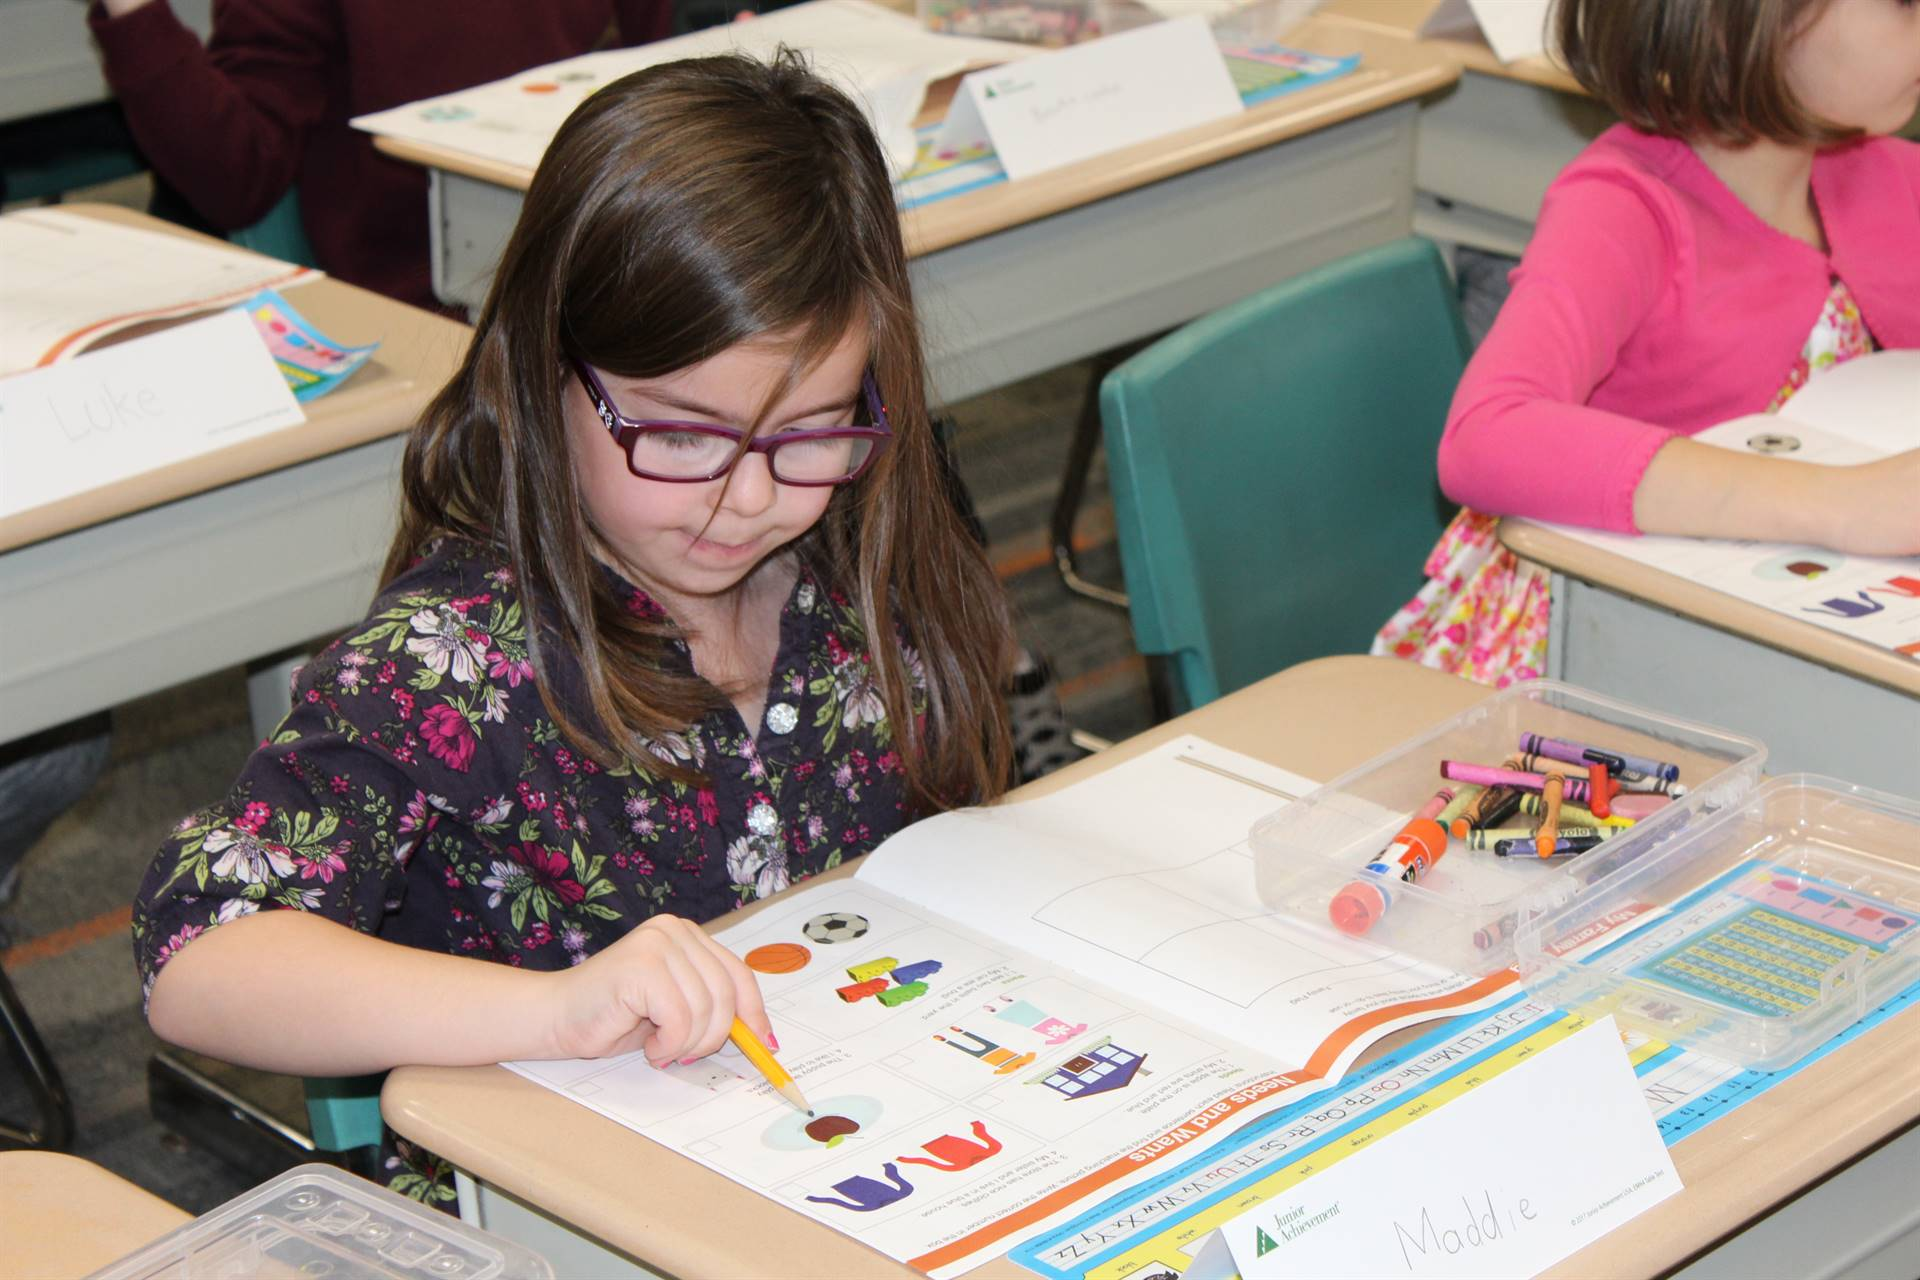 Franklin student pointing to something in her work book